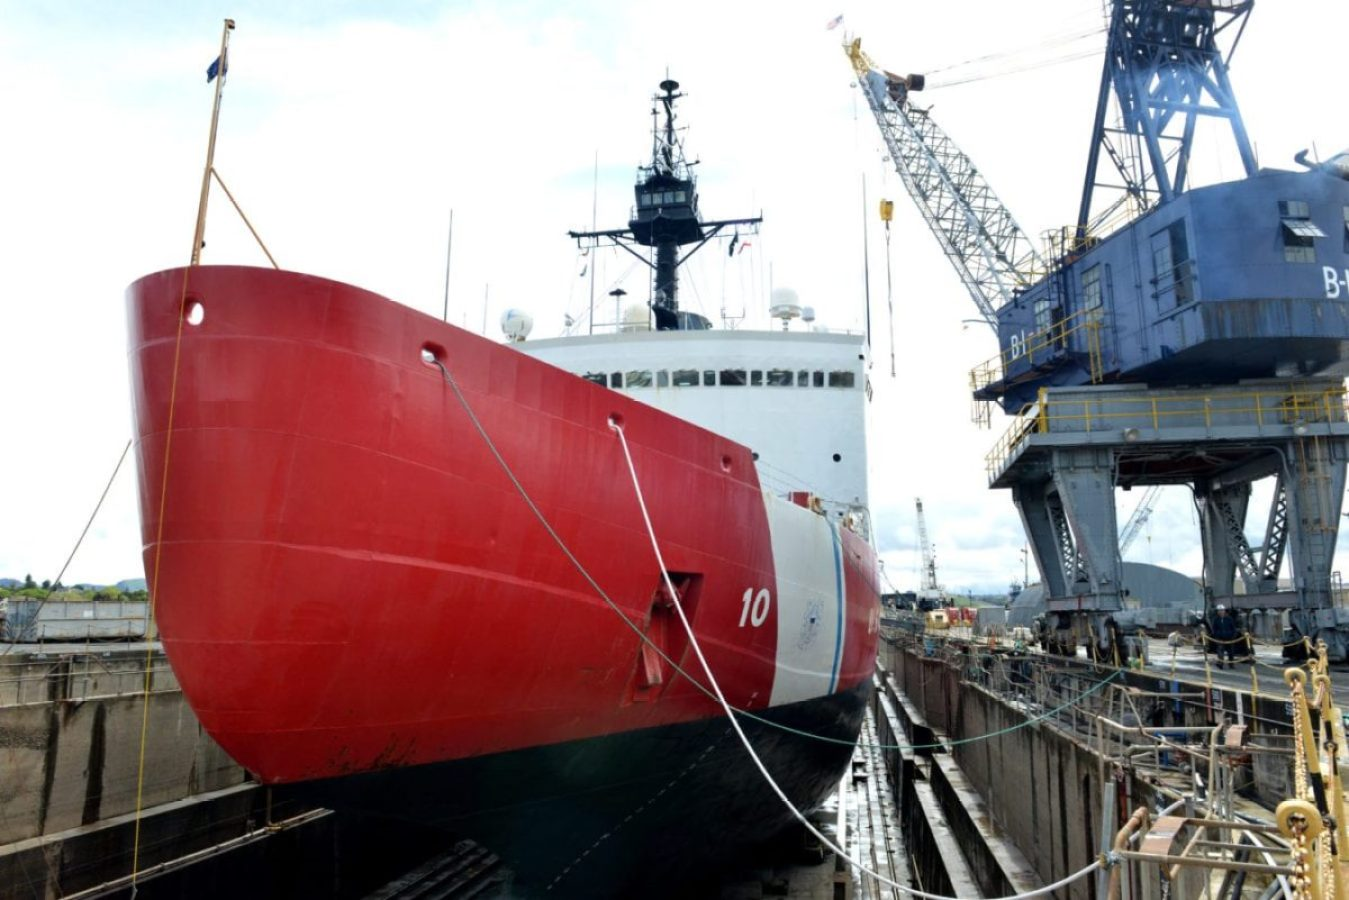 The Coast Guard Cutter Polar Star sits on blocks in a Vallejo, California, dry dock facility underground depot-level maintenance including inspections and repairs to critical cutter components prior to the cutter's next patrol, April 17, 2018. As activity in the polar regions continues to grow, the Coast Guard maintains its aging icebreaking assets to protect U.S. security, environmental, and economic interests in these regions of the world.